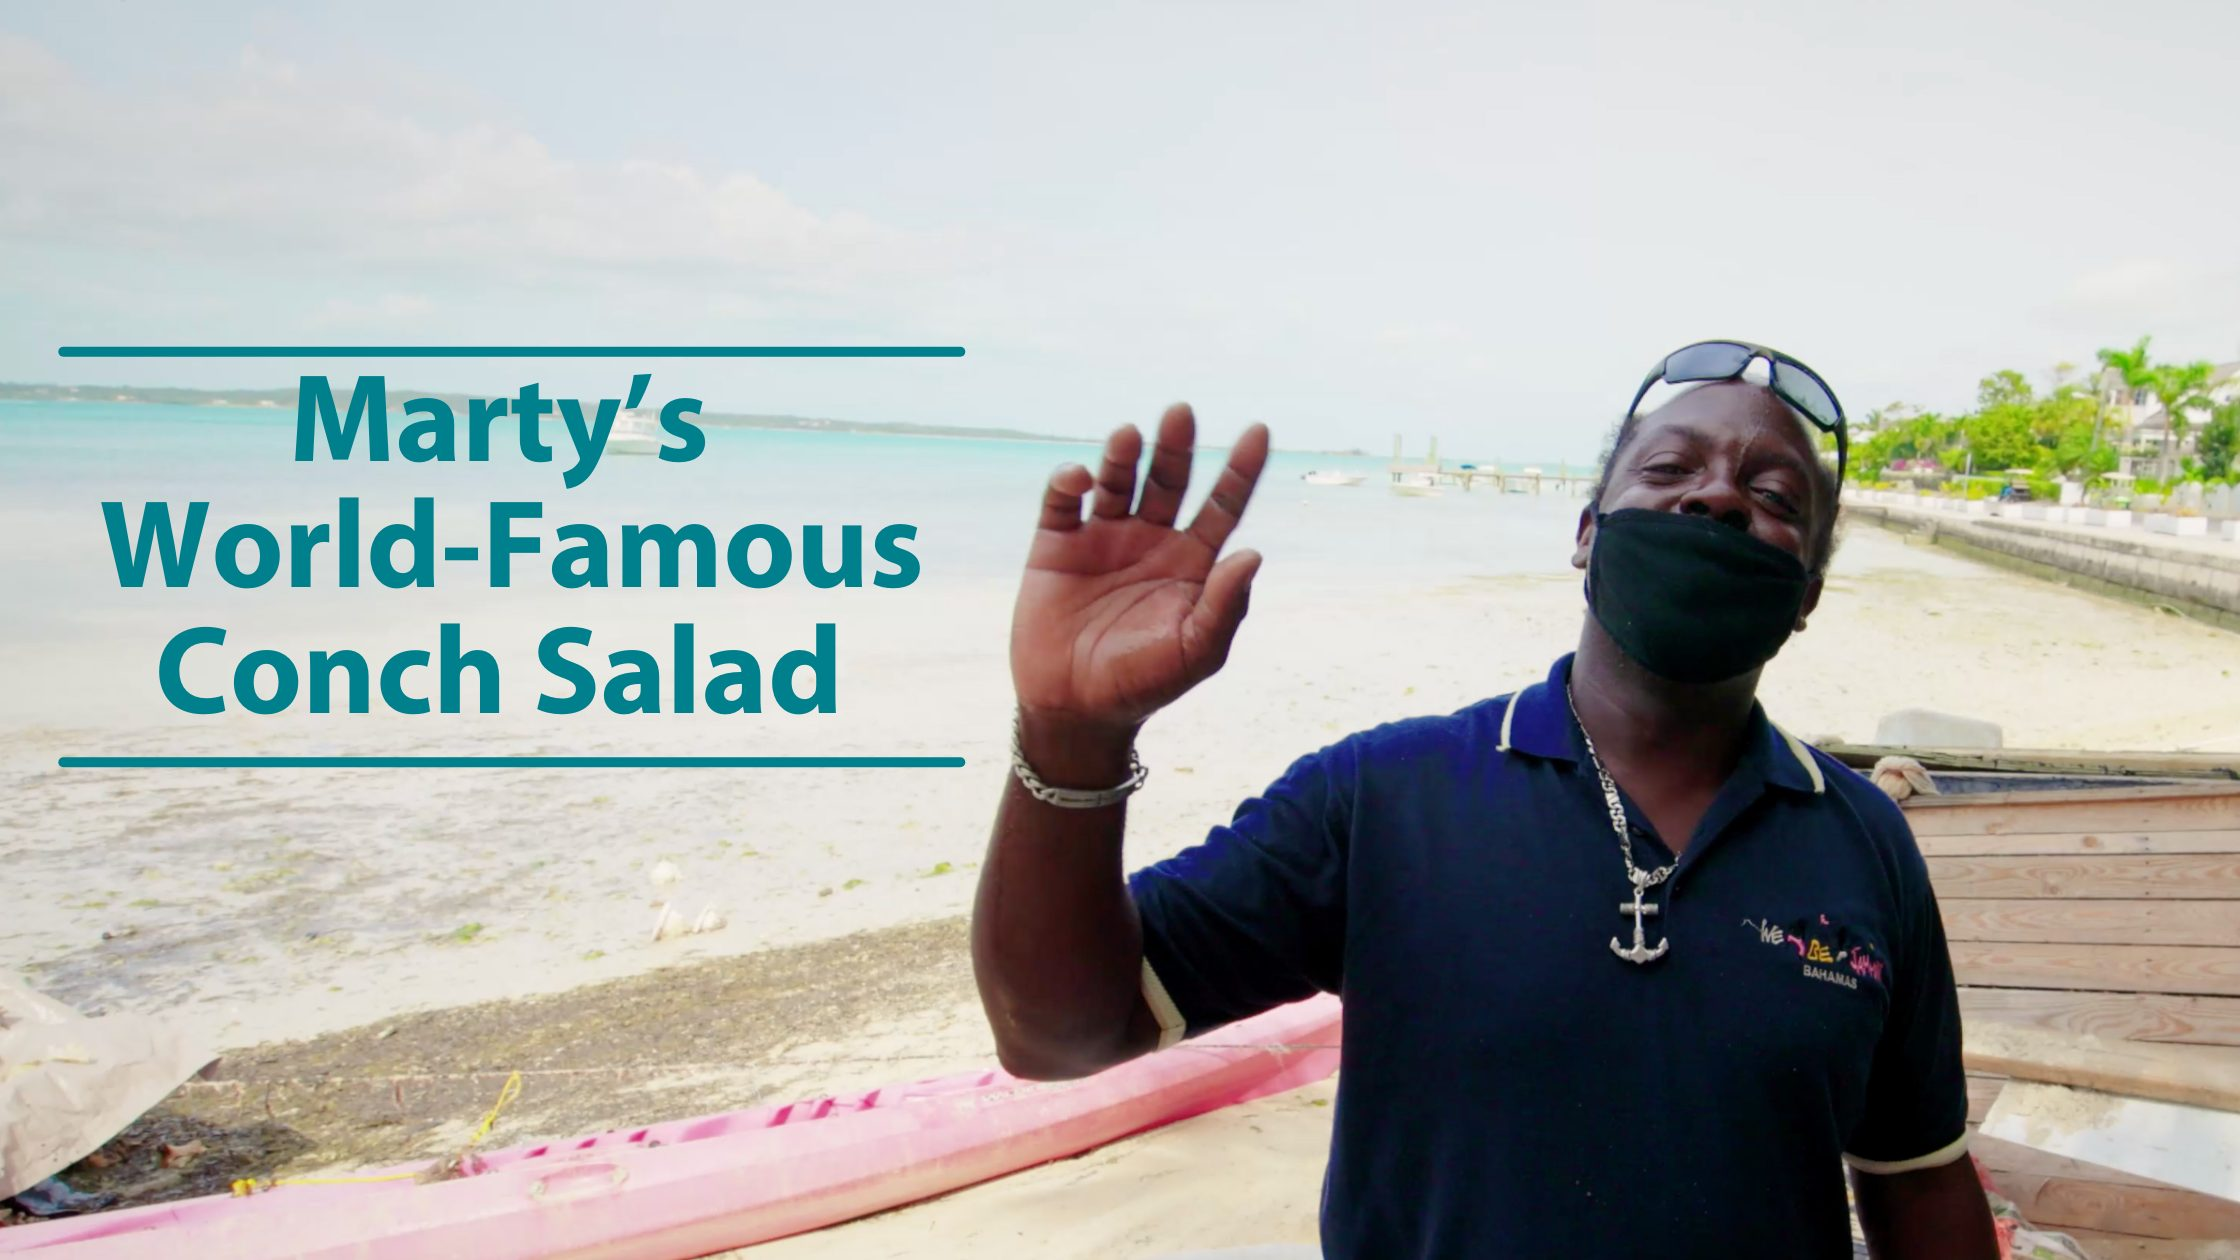 Marty's World-Famous Conch Salad